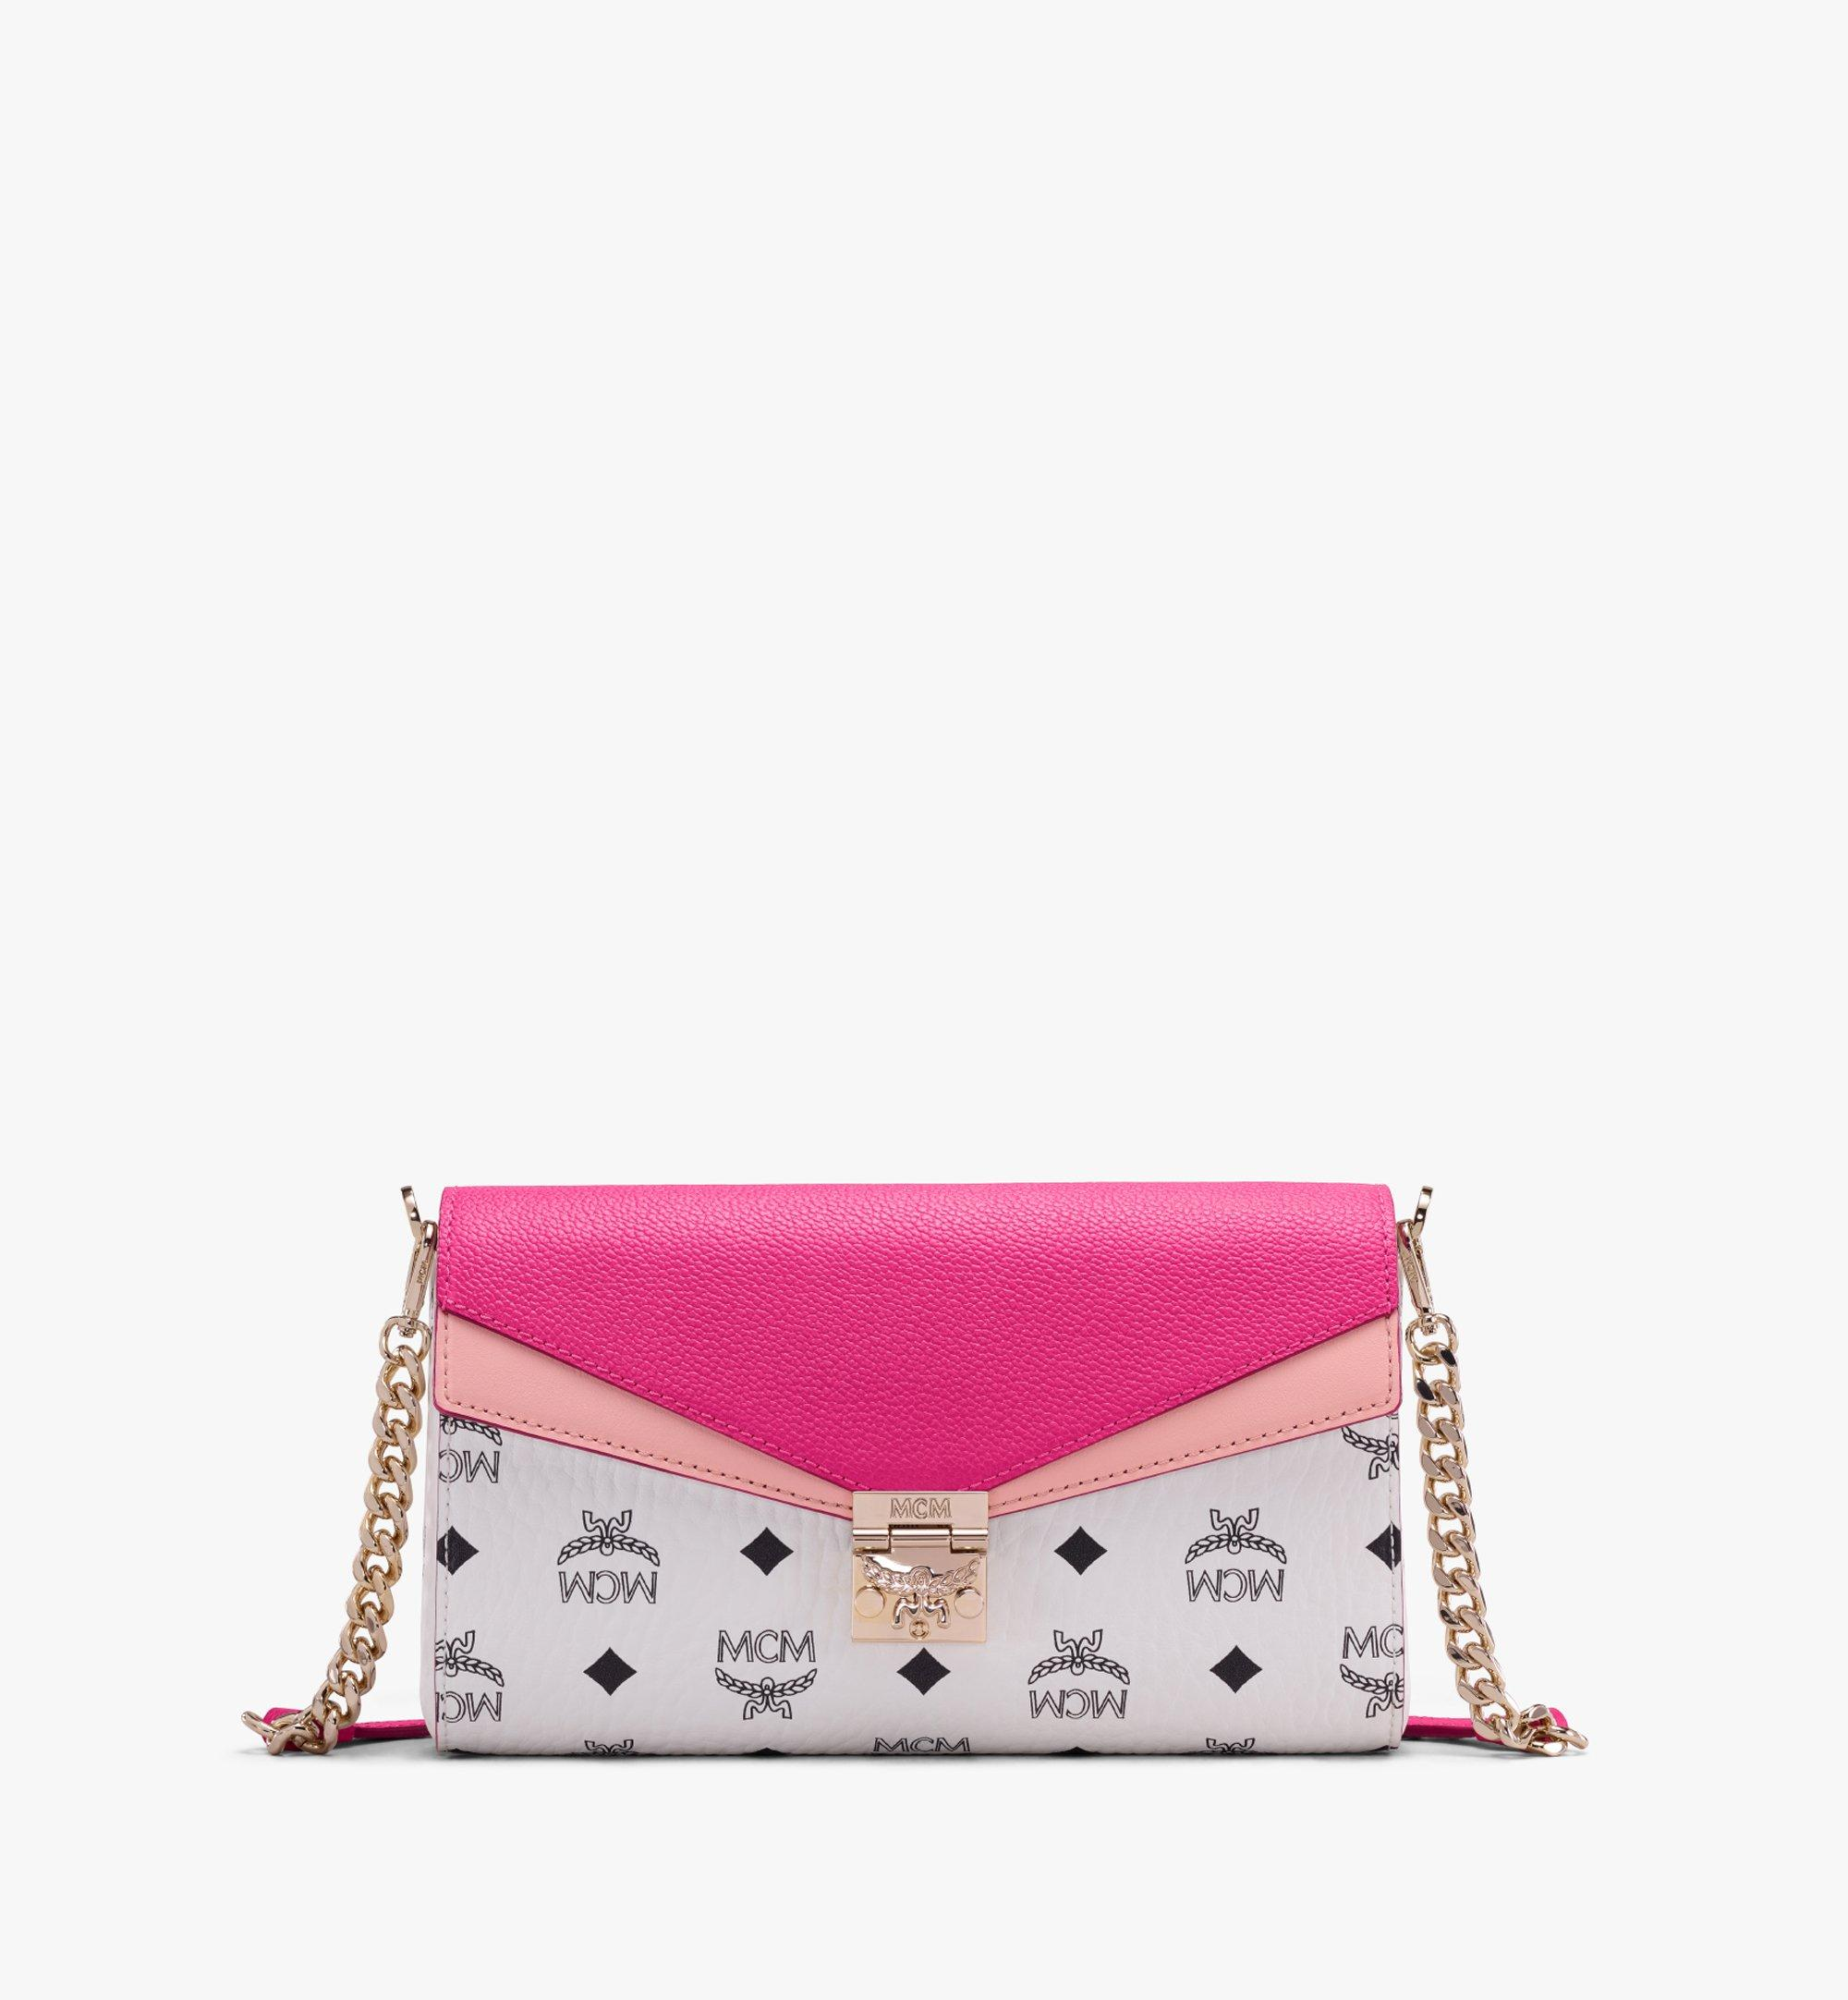 MCM Millie Crossbody in Color Block Visetos Pink MWRAAME08QJ001 Alternate View 1